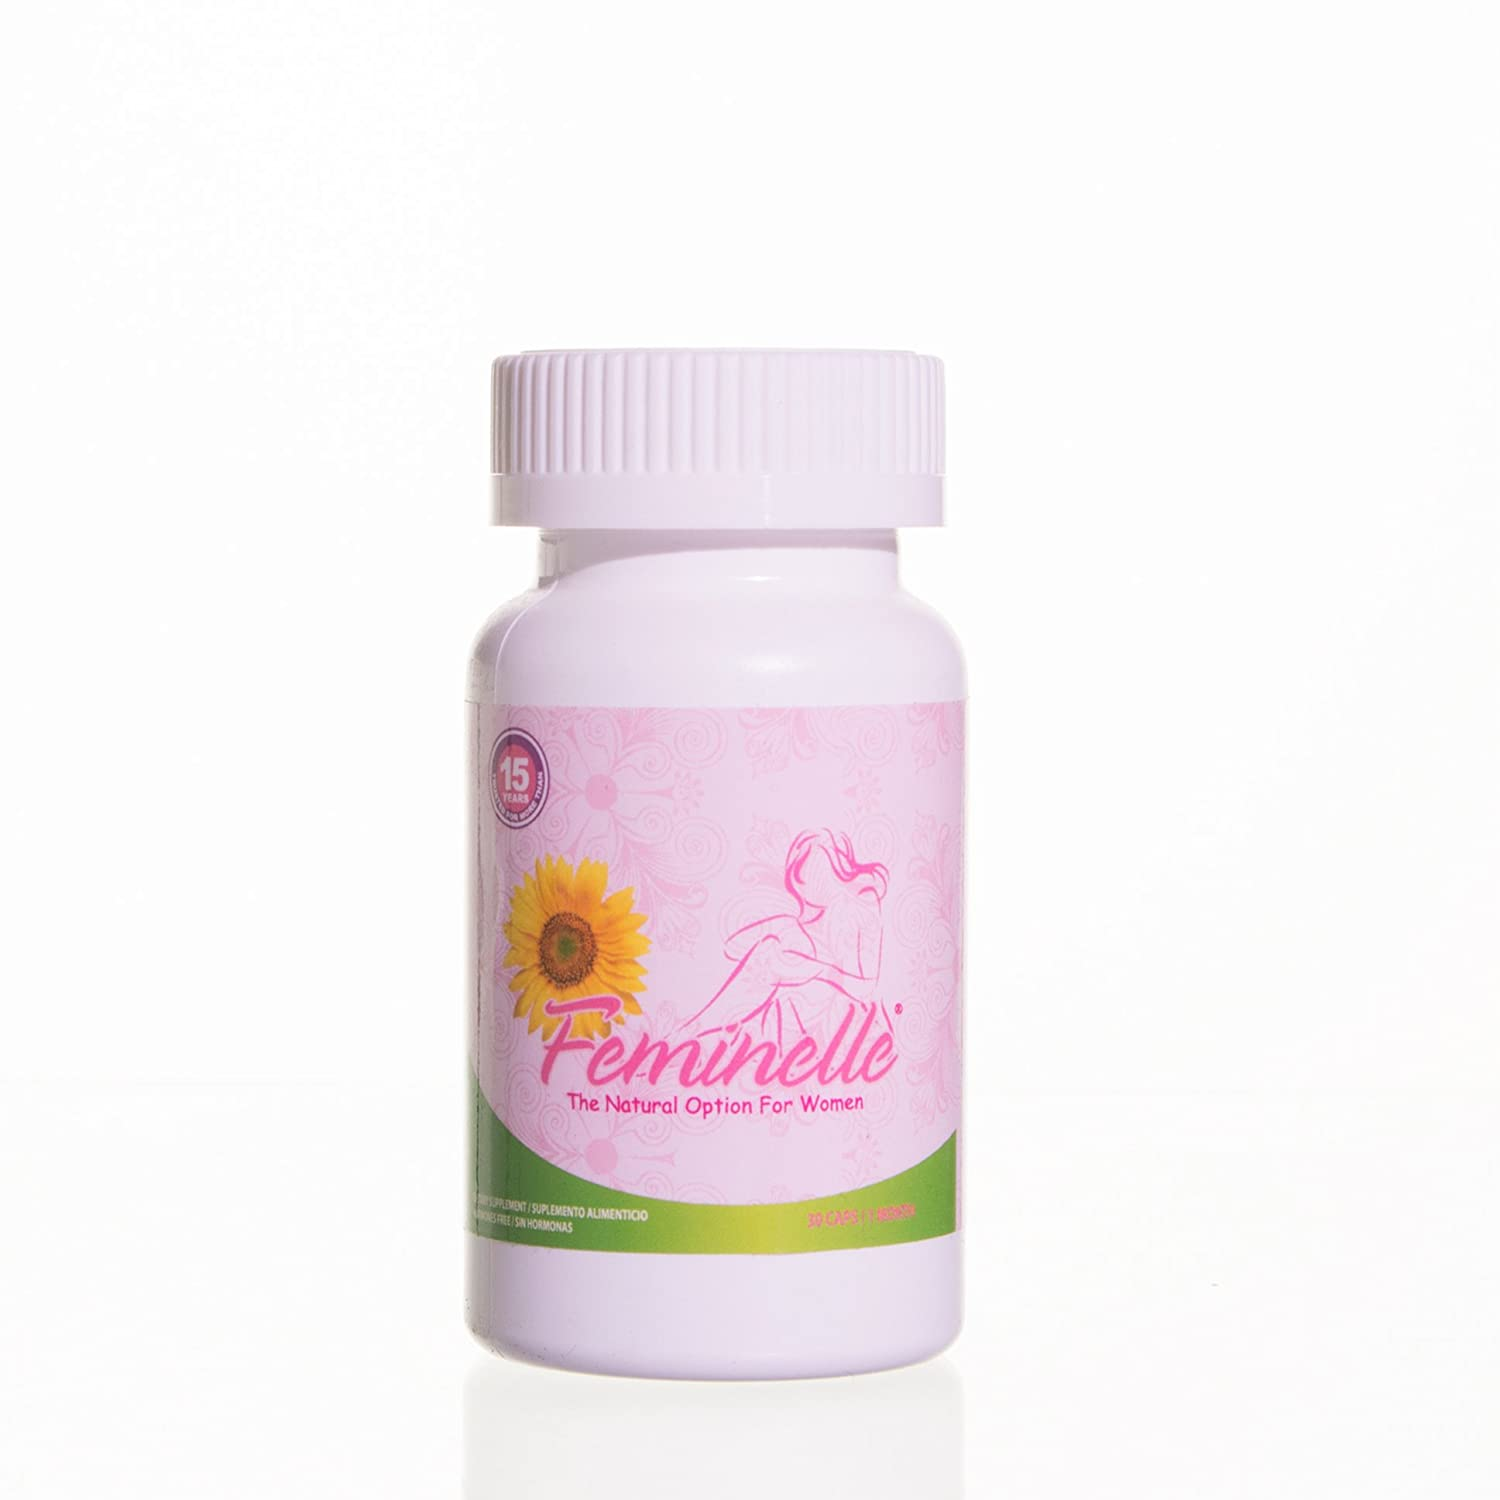 Amazon.com: Feminelle (3 Bottles - New Version) 90 caps: Health & Personal Care